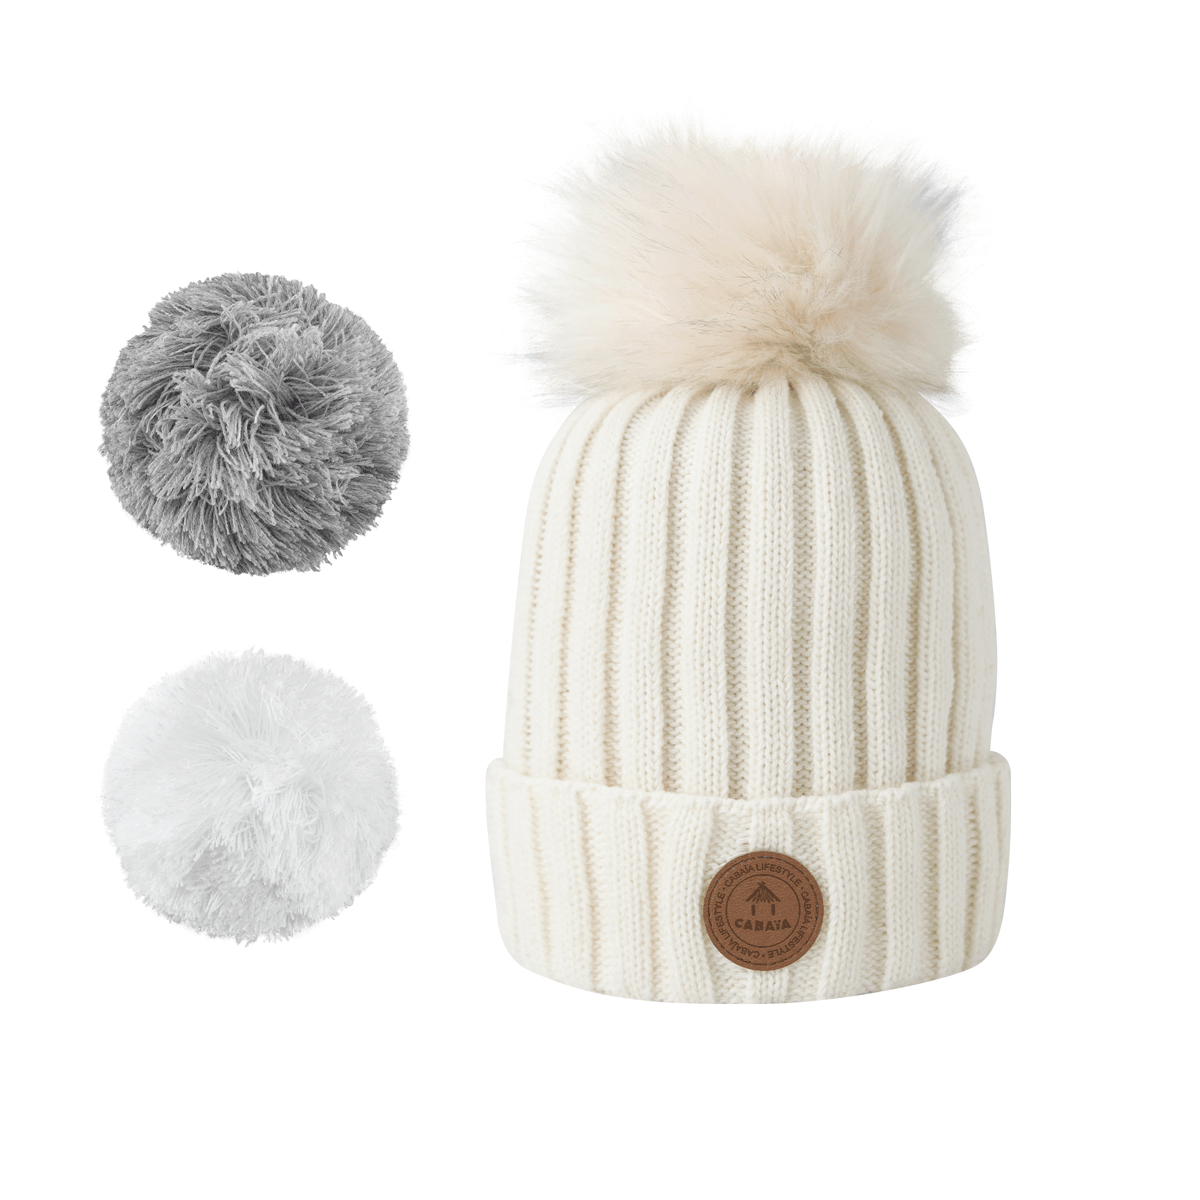 1 bonnet + 3 pompons, Kir Royal White Polaire, Cabaïa